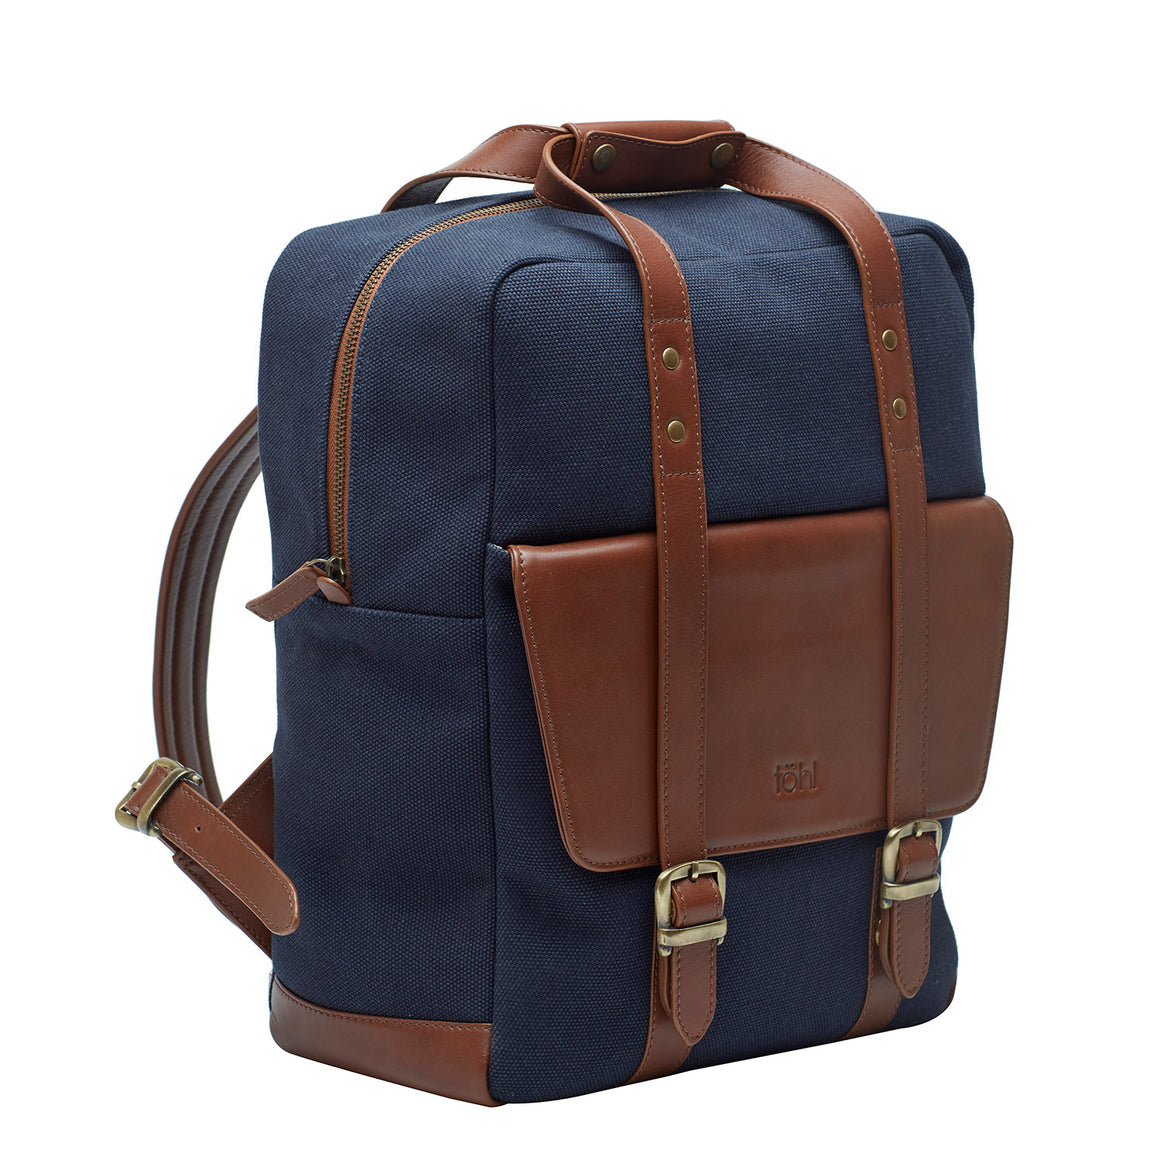 BP 0008 - TOHL ANDREA MEN'S BACKPACK - NAVY